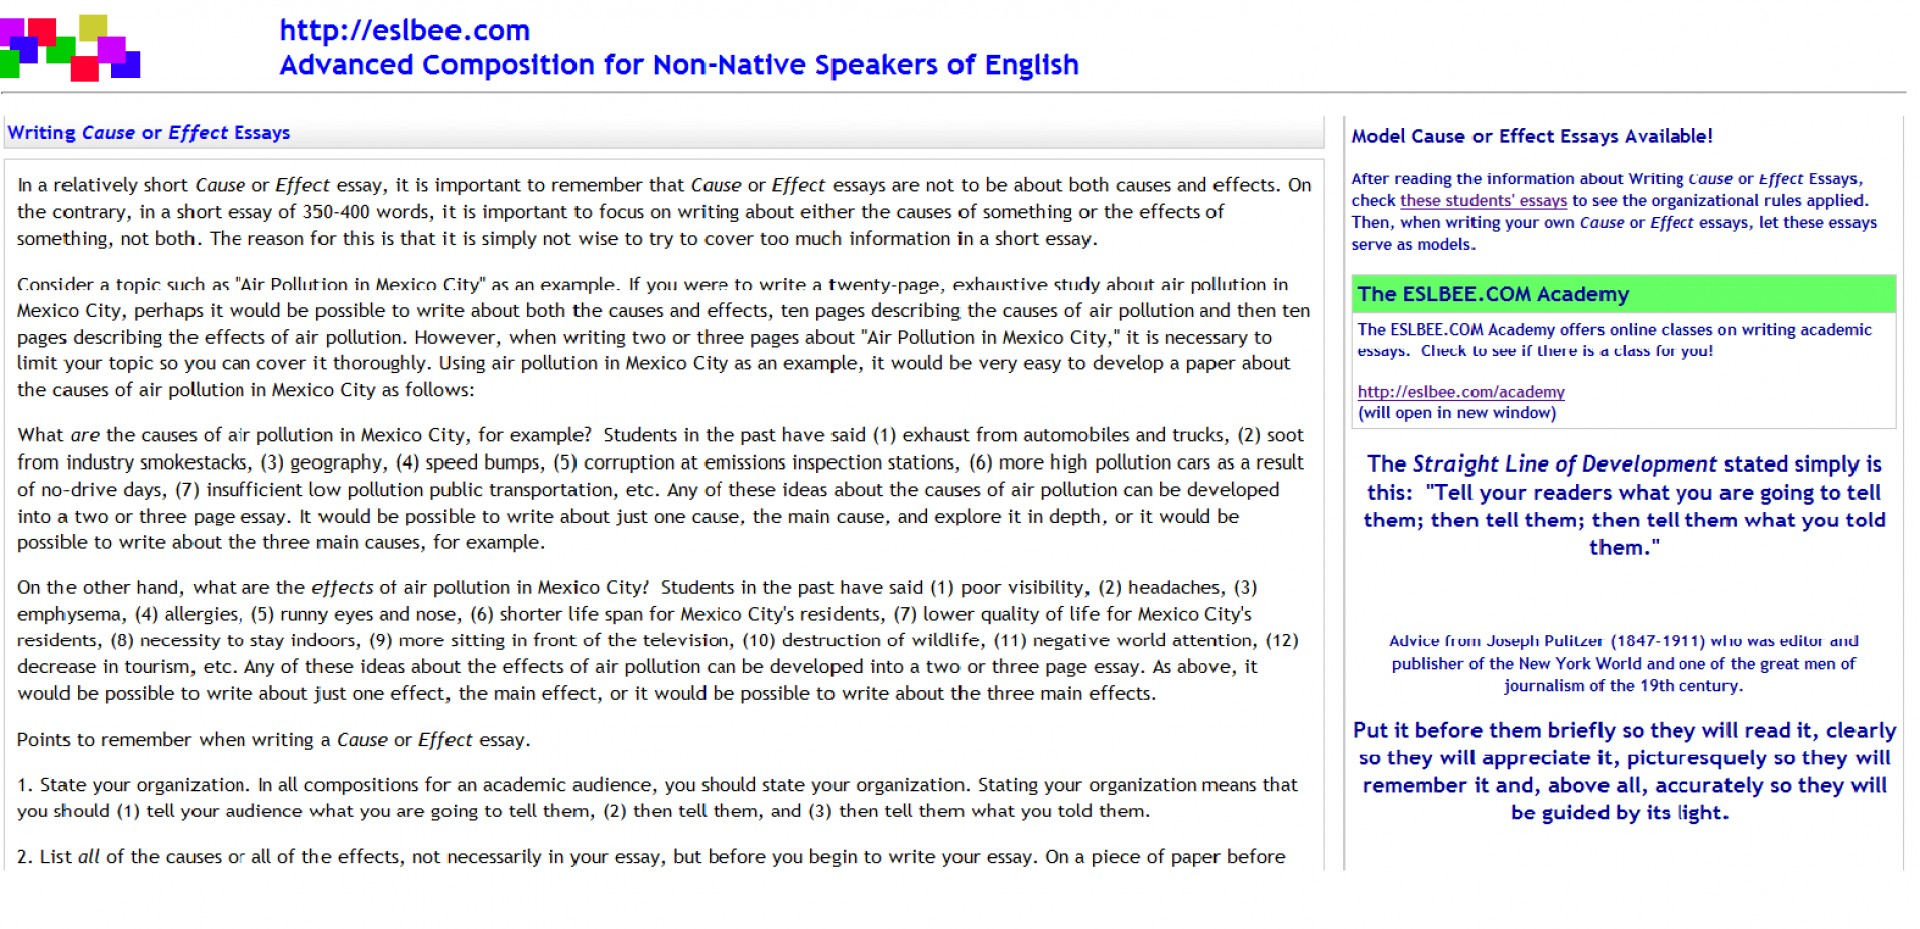 024 Image4 Essay Example Cause And Effect Of Remarkable Overpopulation 1920